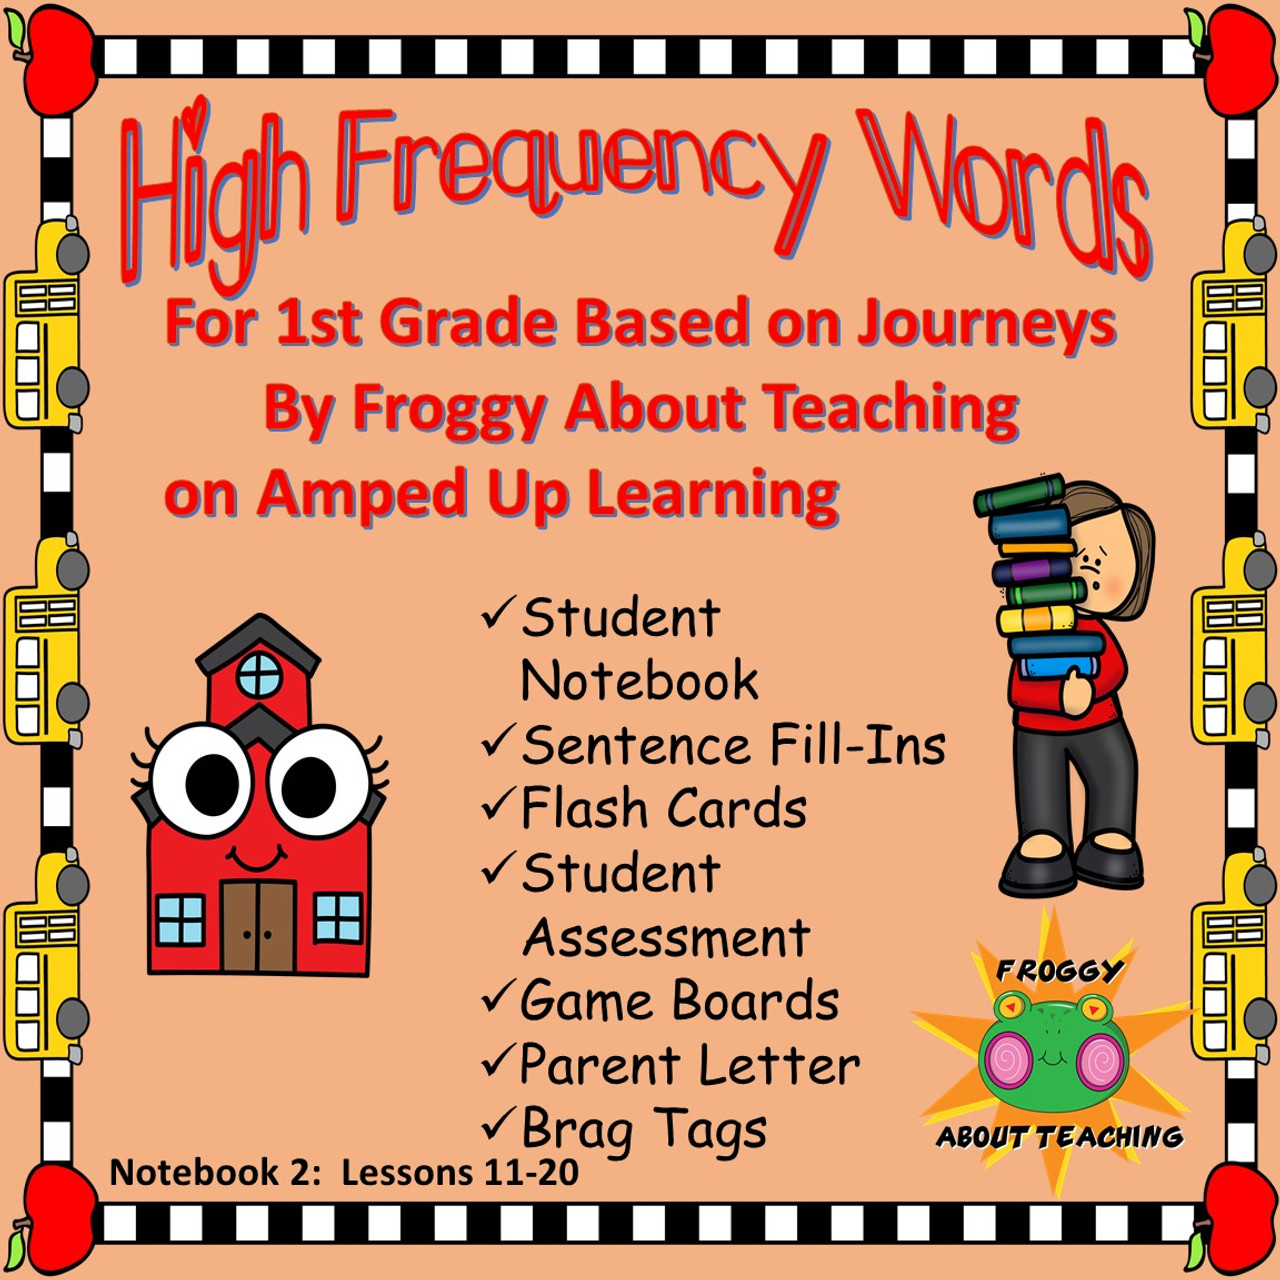 1st g. High Frequency Words: Notebook 2 (Journeys L11-20)